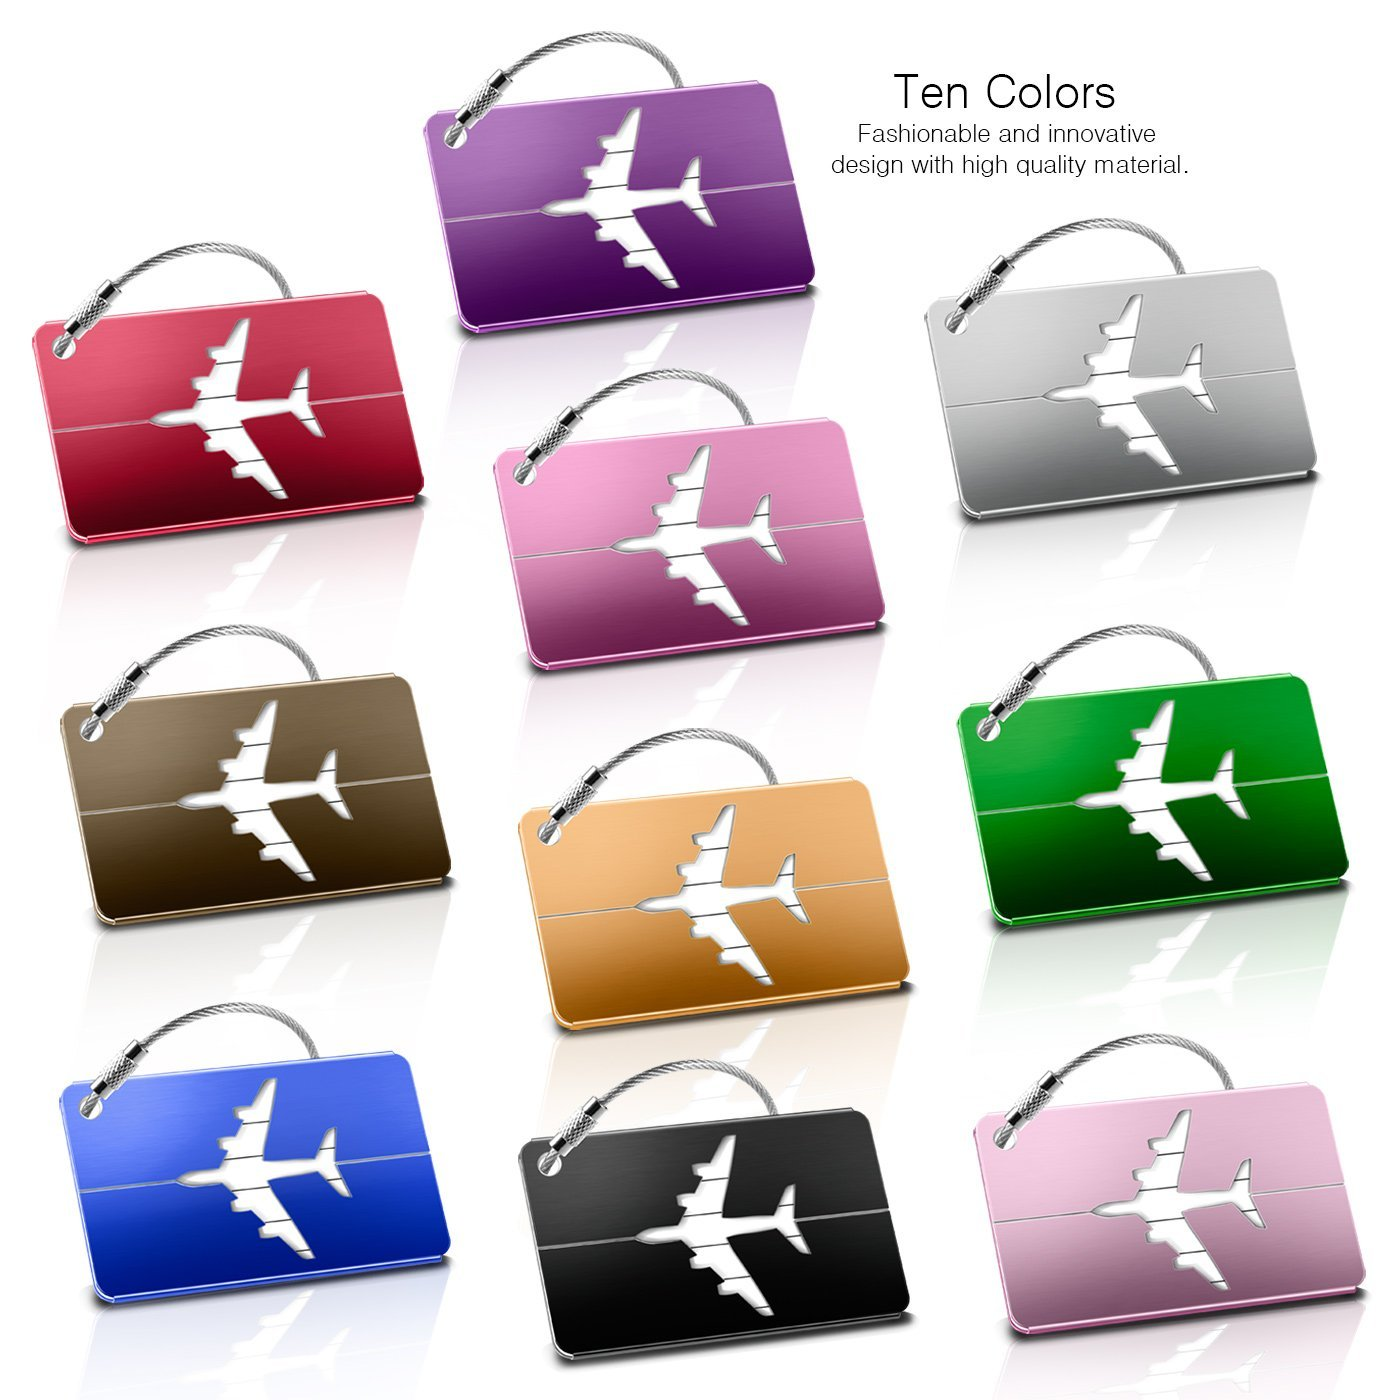 Luggage Tags 10pcs,Baggage Tags Tag Labels with Business Card Holder(10 colors) by Yosemy (Image #2)